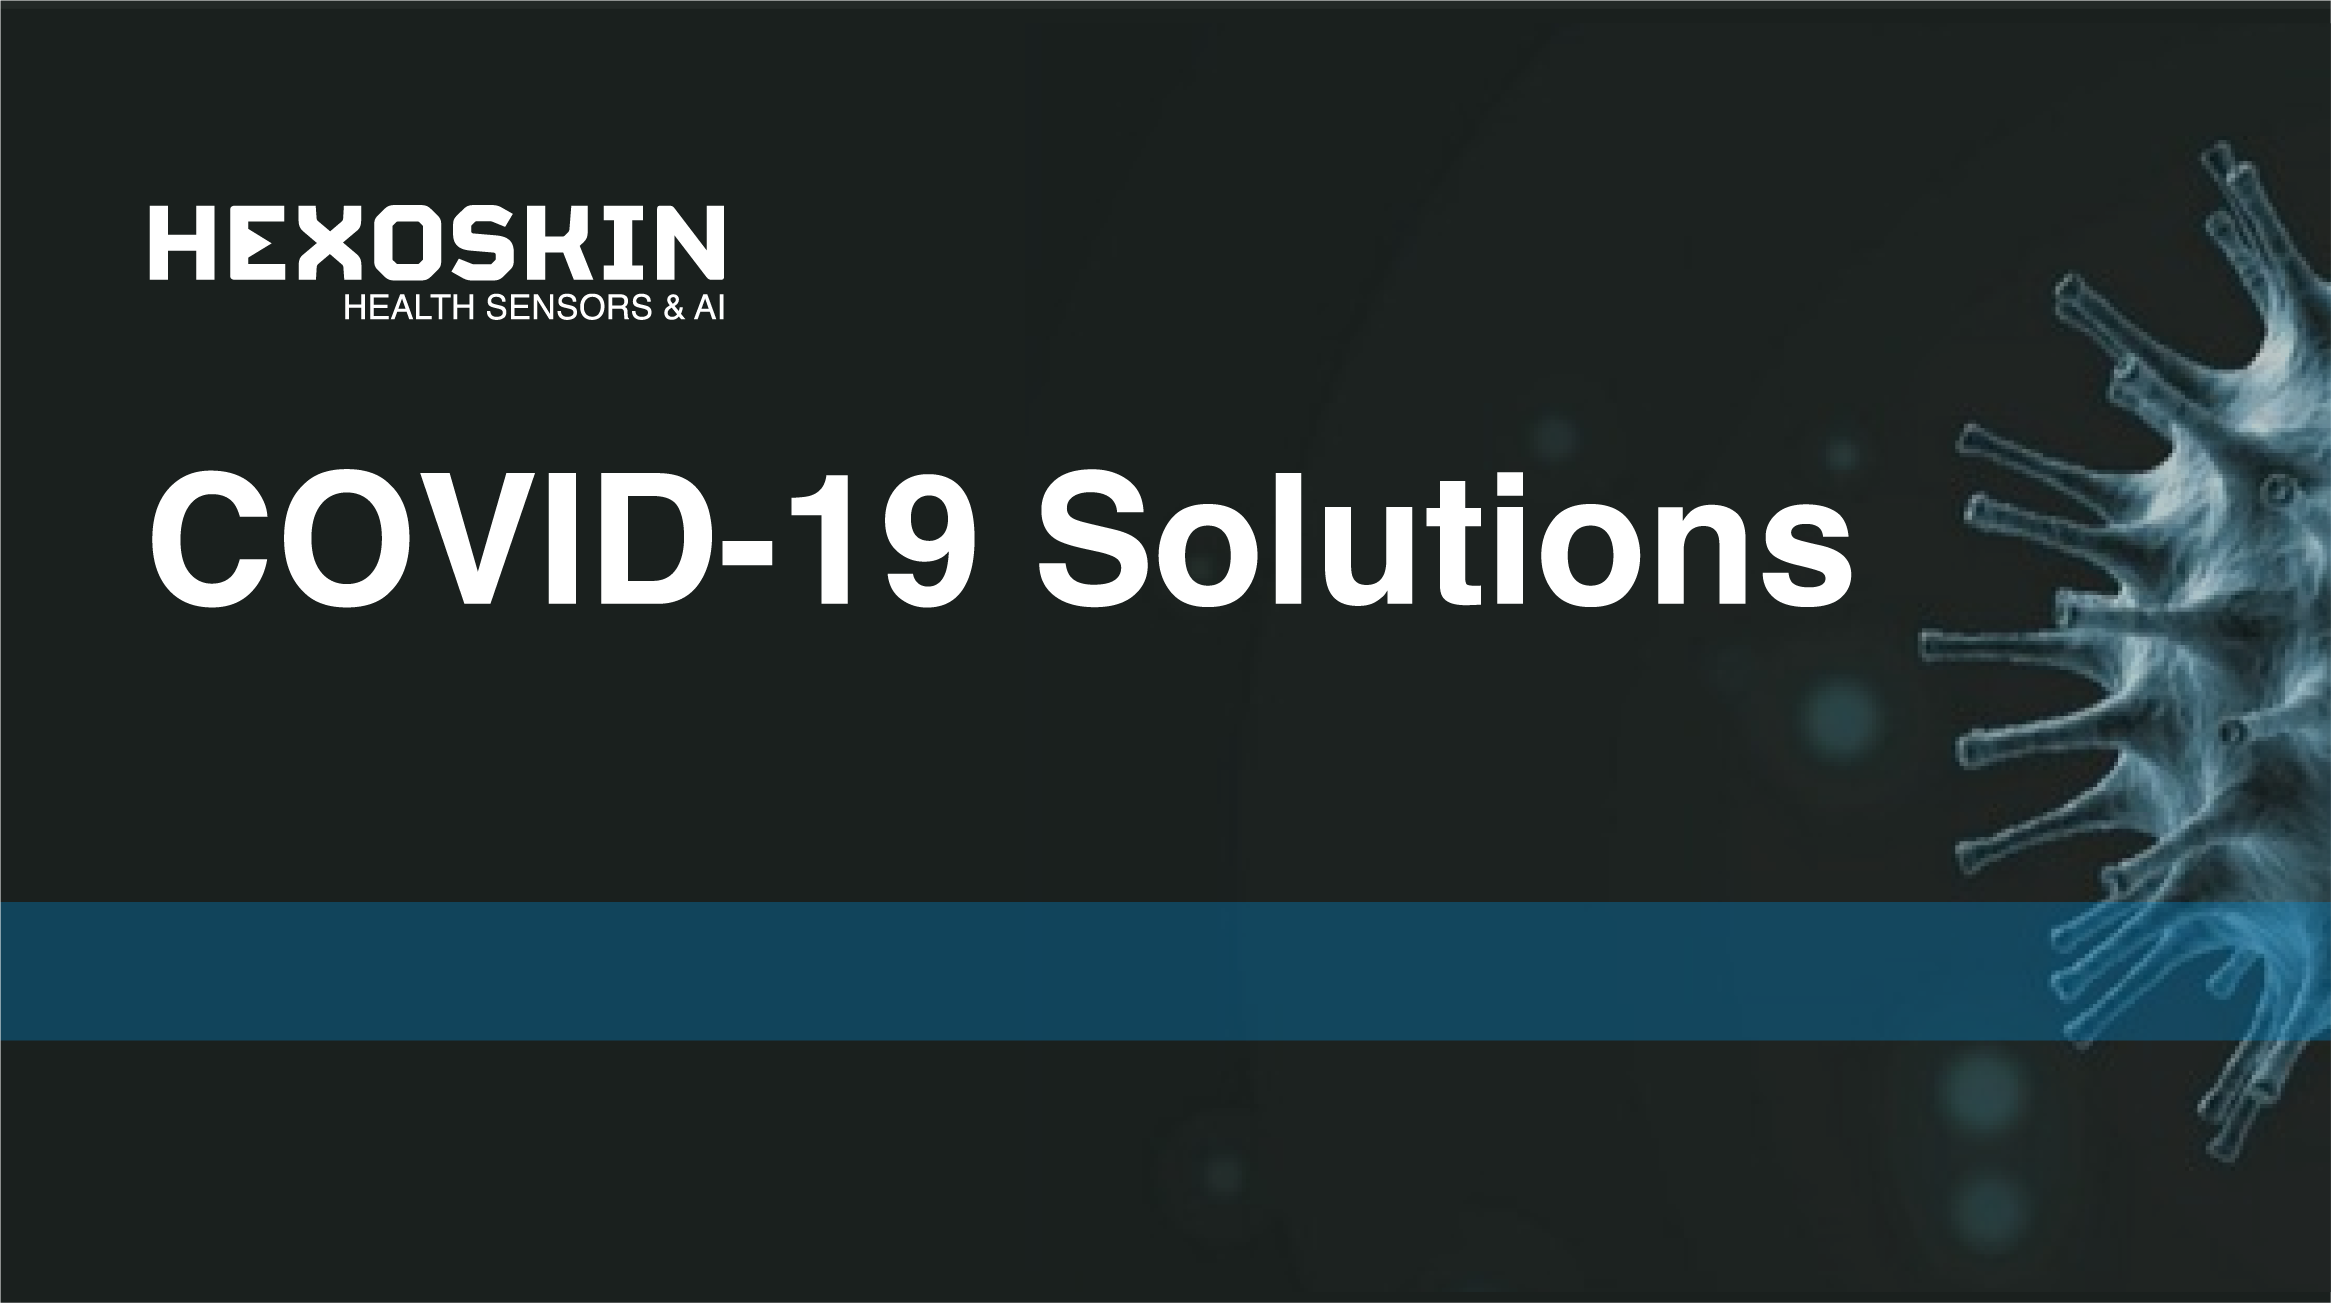 Hexoskin: COVID-19 Solutions